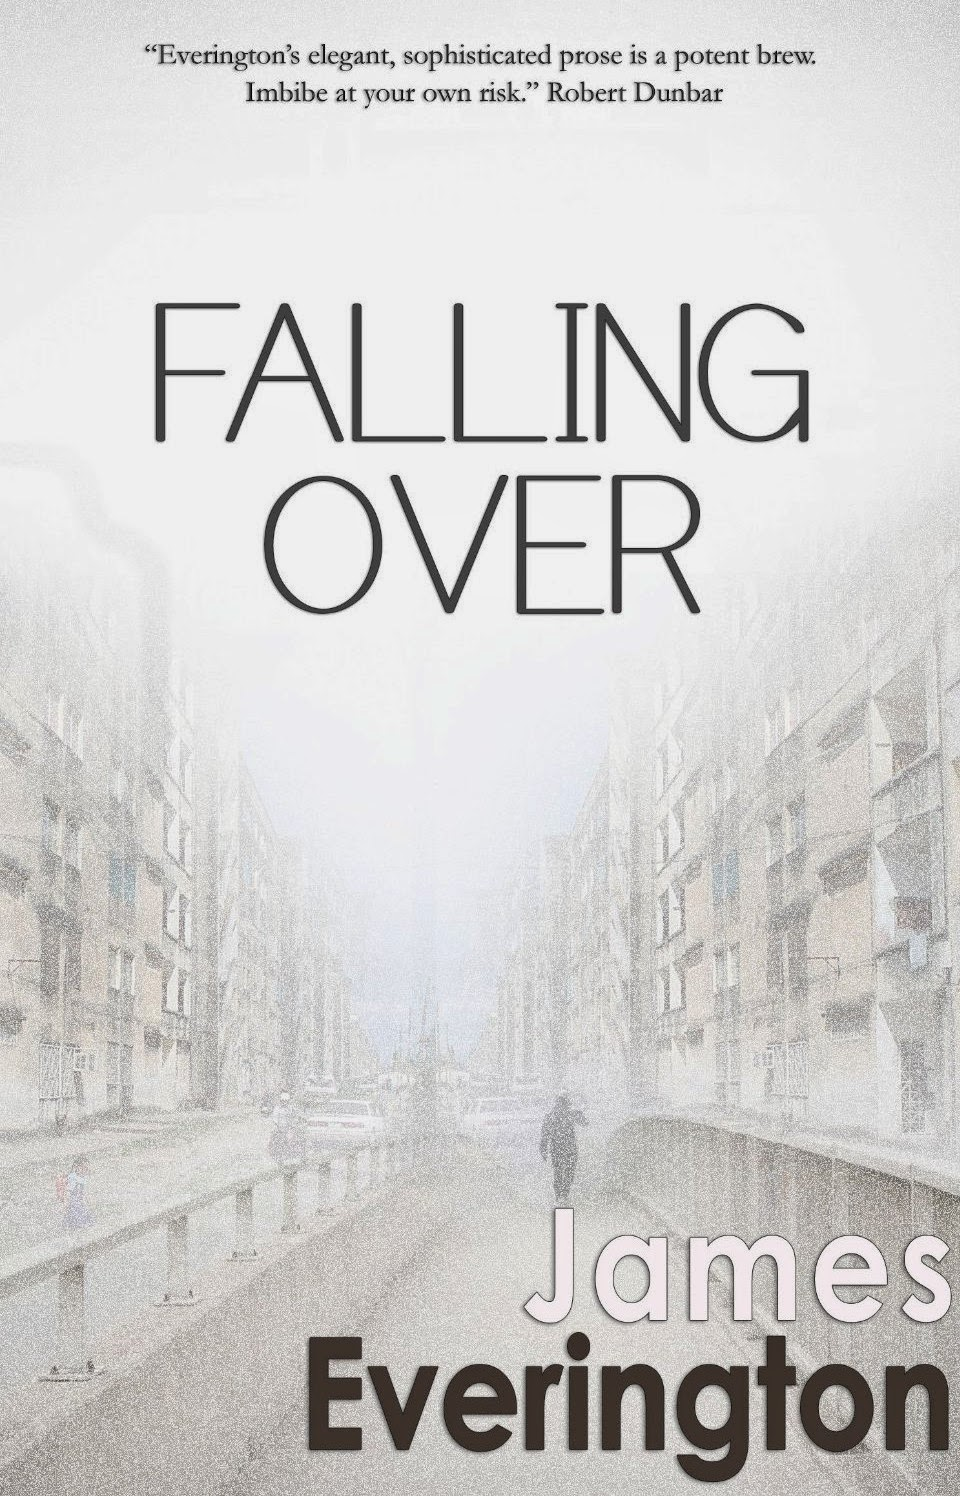 http://www.amazon.co.uk/Falling-Over-James-Everington-ebook/dp/B00DV2QNG4/ref=sr_1_1?s=digital-text&ie=UTF8&qid=1404526929&sr=1-1&keywords=falling+over